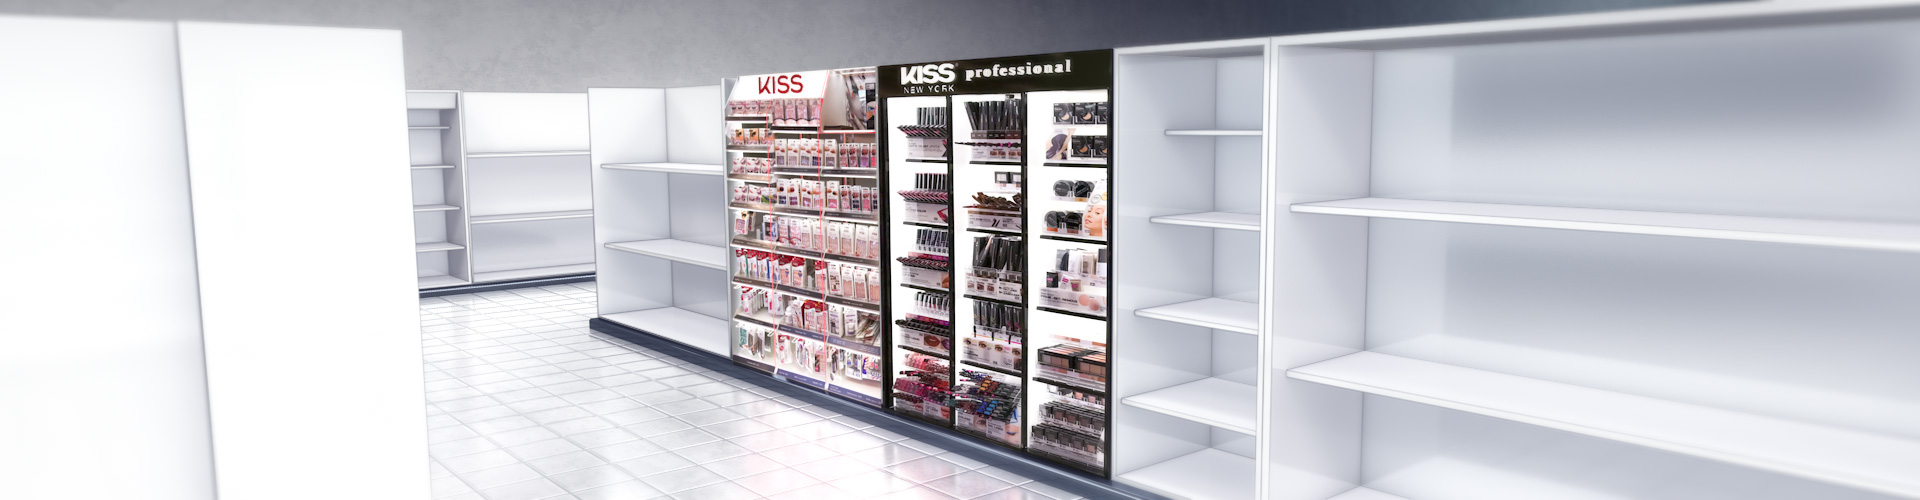 POS Display, Point of Sale, POS Marketing, Faber Castell, Werbeform, Bodendisplay, Thekendisplay, Regaldisplay